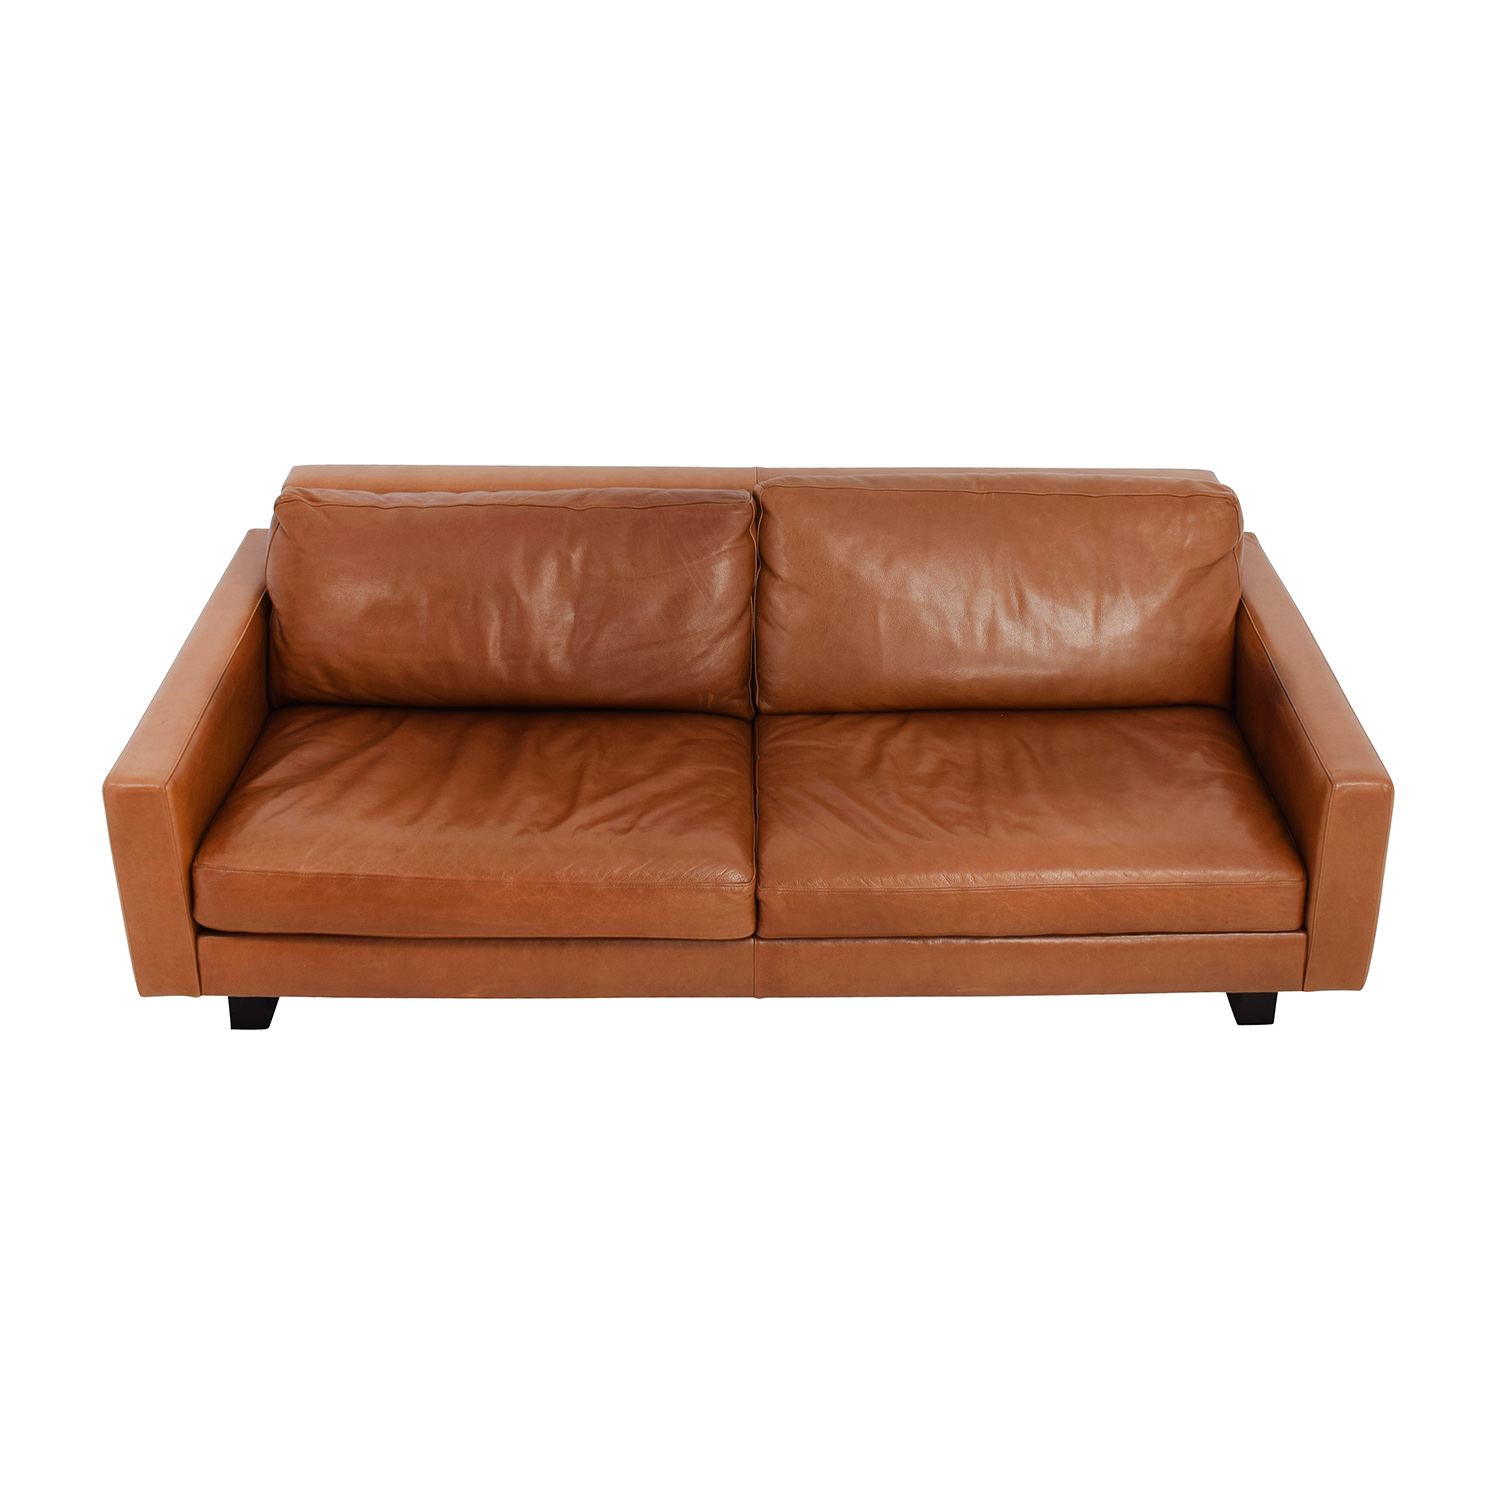 Used leather sofa used rh leather sofa thesofa for Used leather sofa set